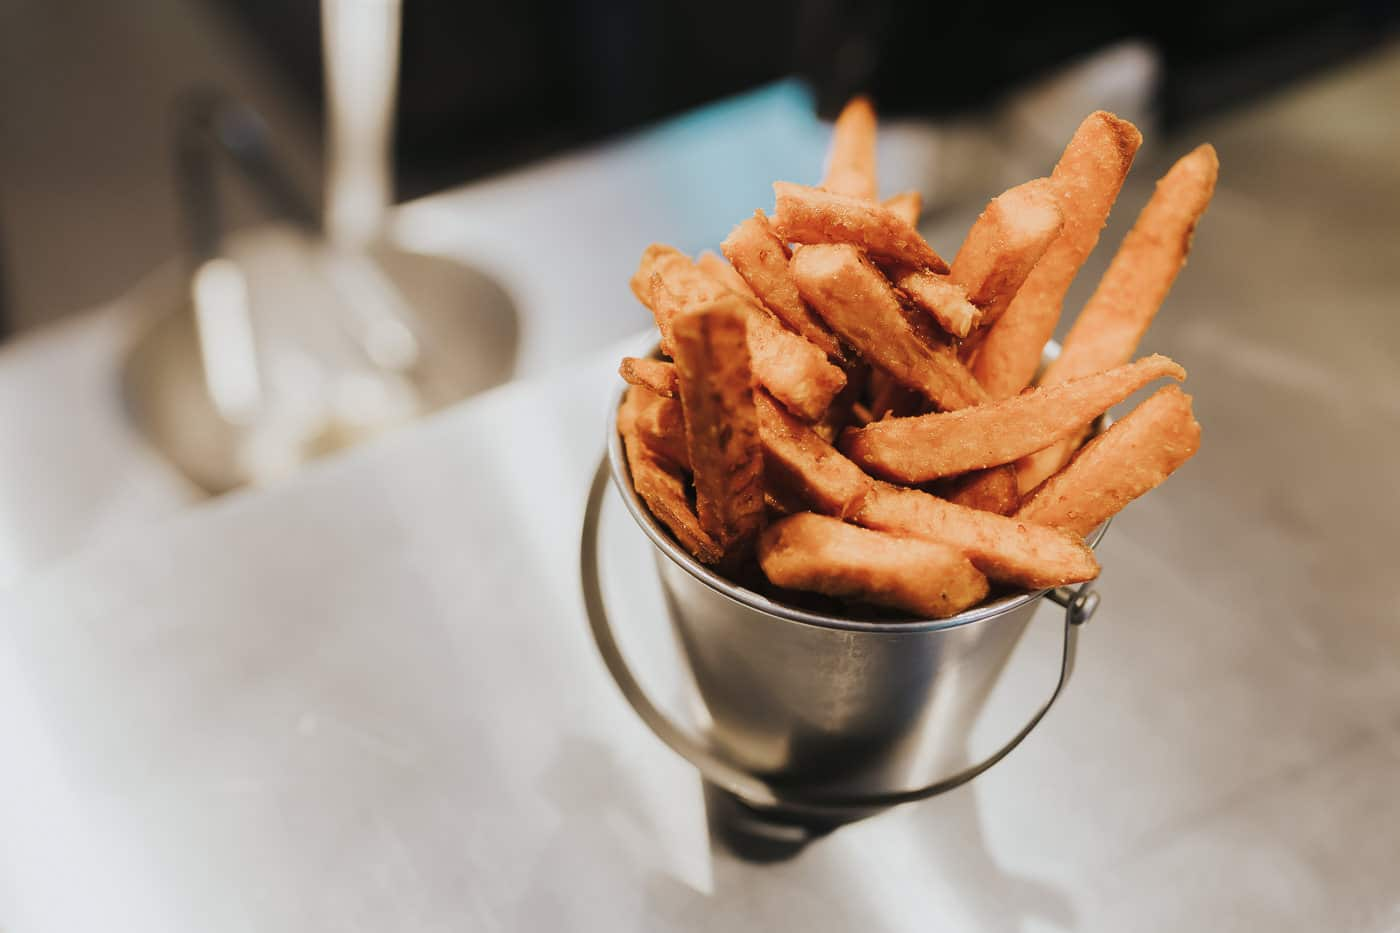 Portion of sweet potato fries on a serving pass ready to go out